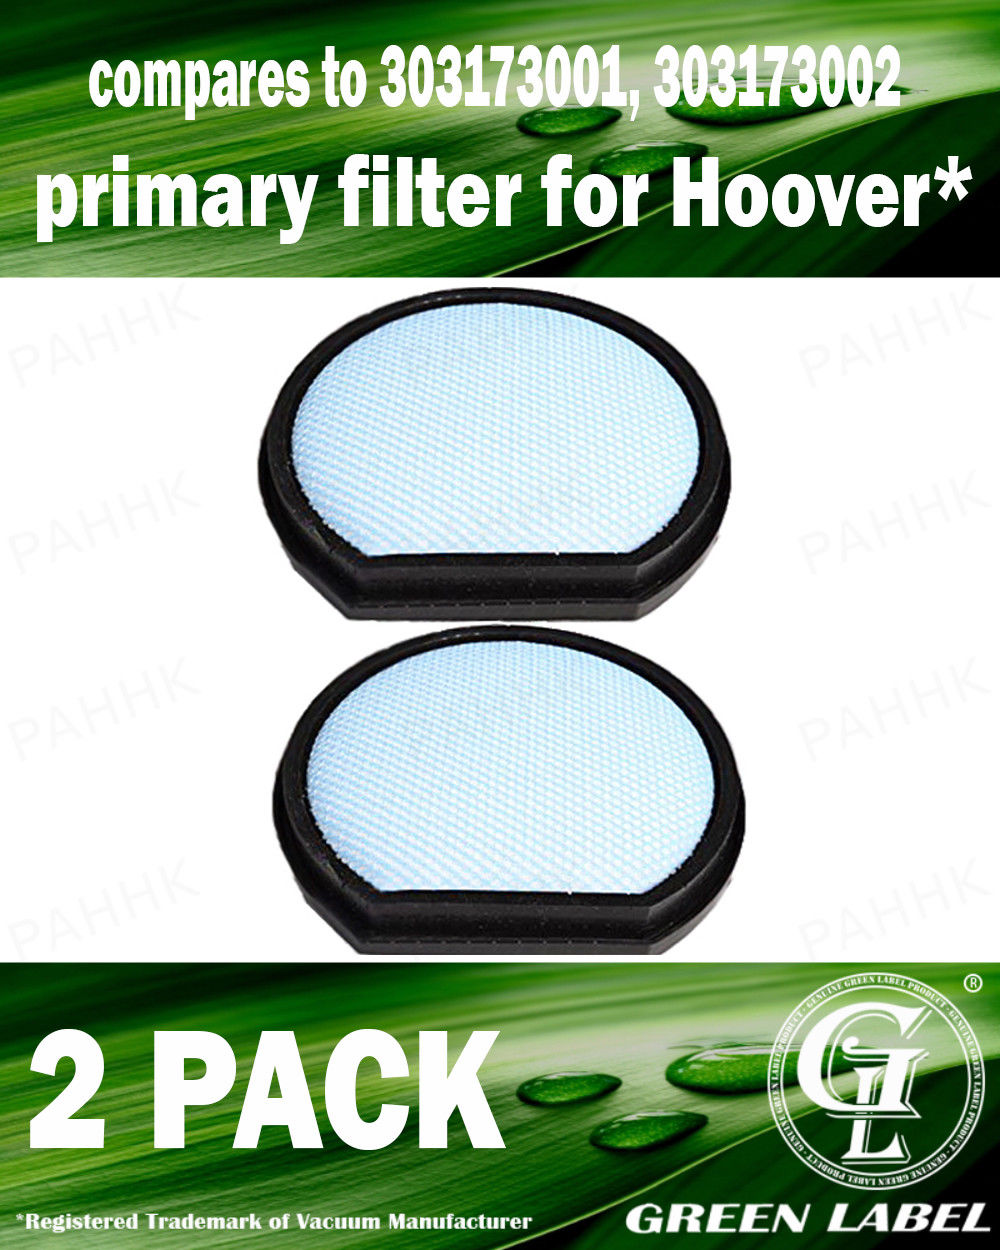 By Green Label 2 Pack Primary Filter for Hoover T-Series Vacuum Cleaners